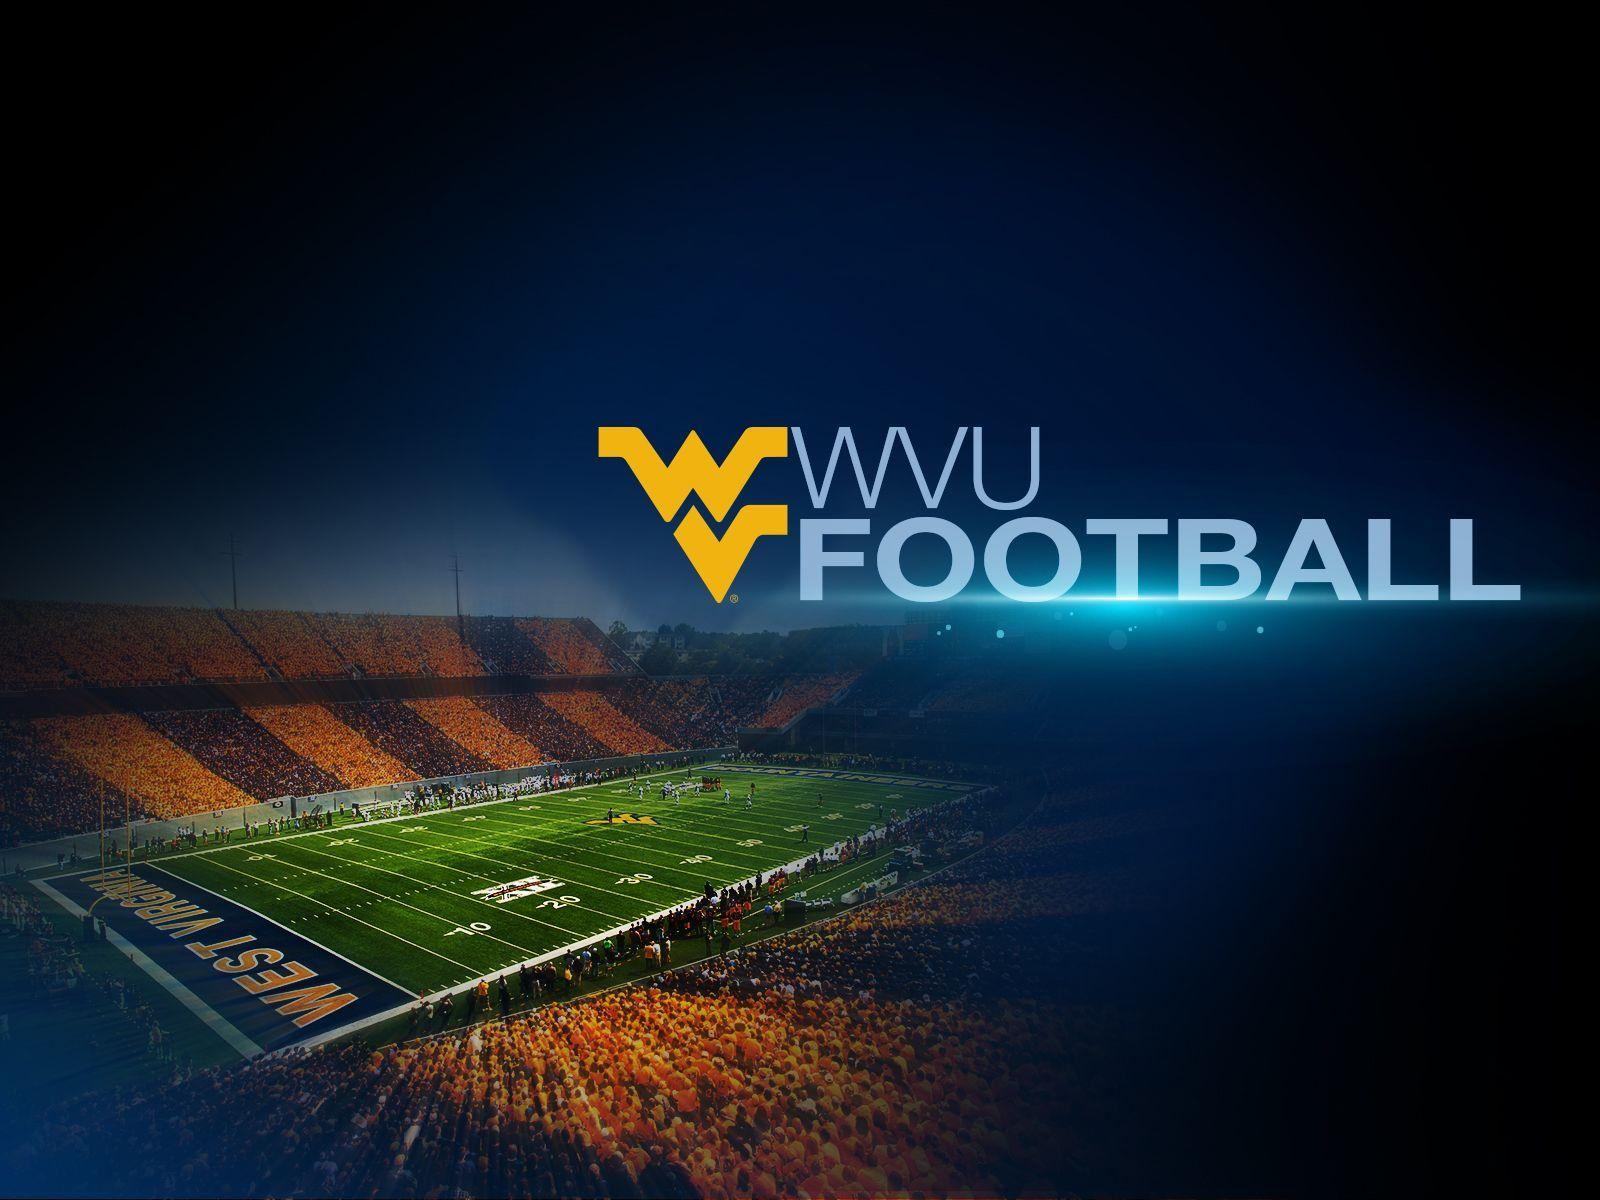 Special Collection: West Virginia Wallpaper, High Definition West